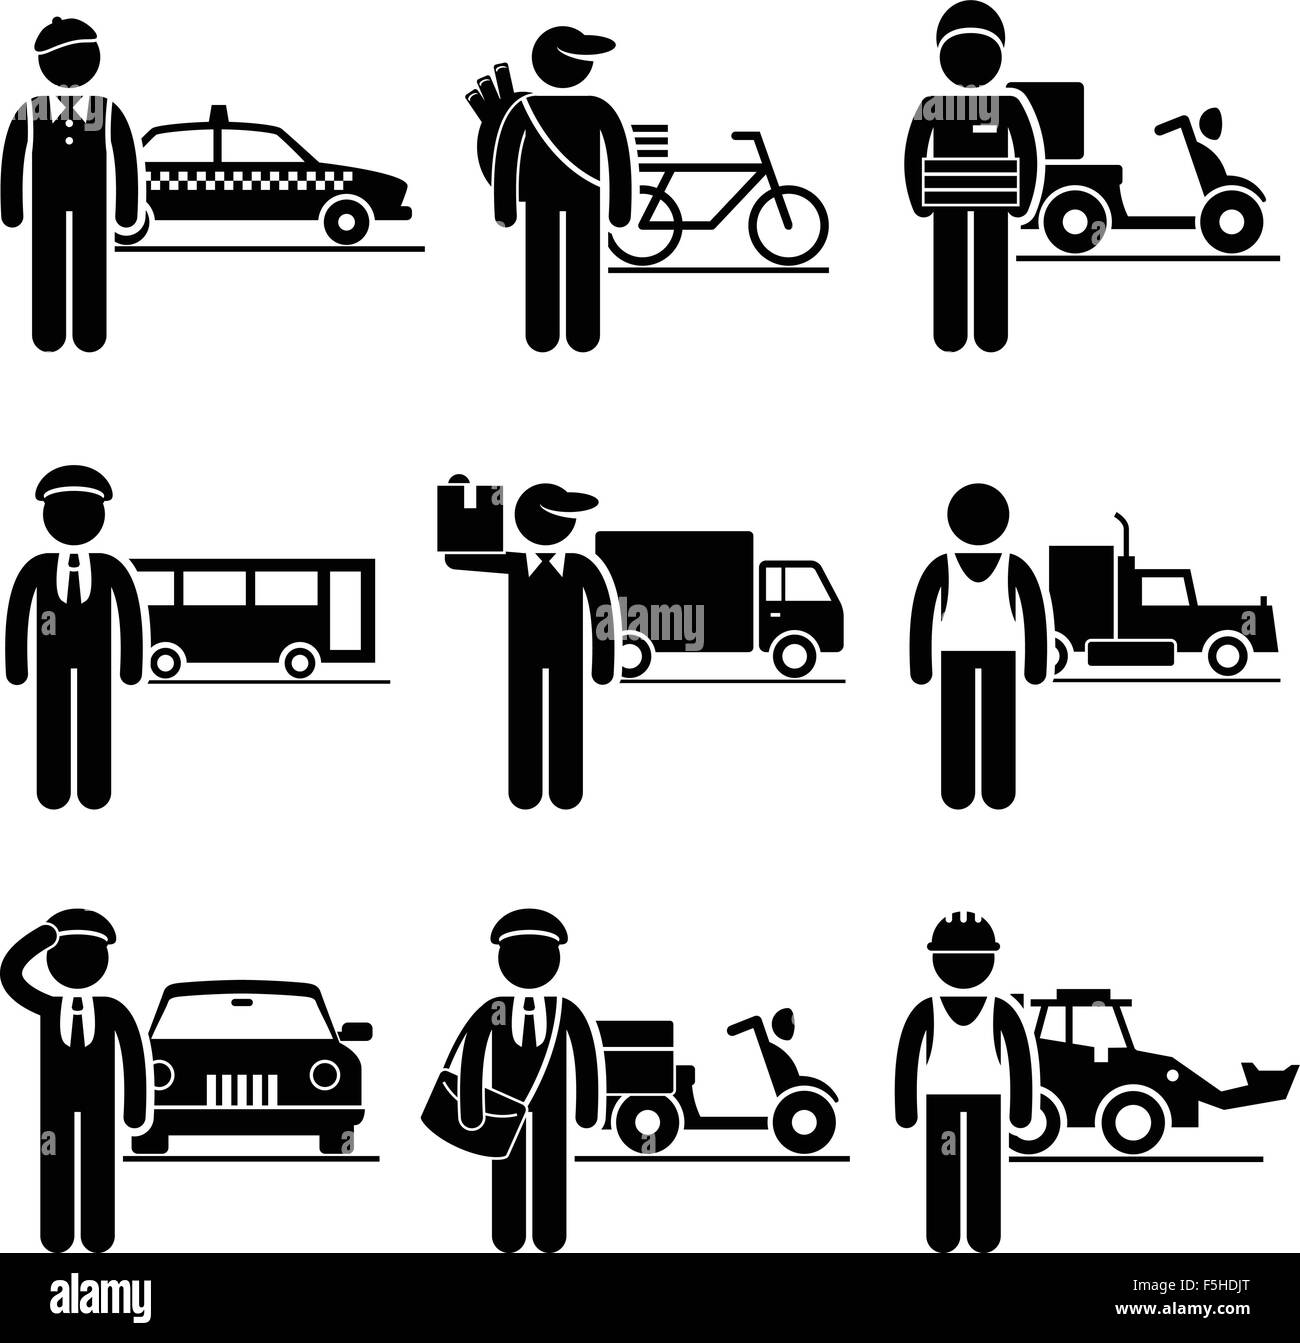 Driver Delivery Jobs Occupations Careers - Taxi, Newspaper, Pizza, Bus, Mover, Truck, Chauffeur, Postman, Construction - Stock Image